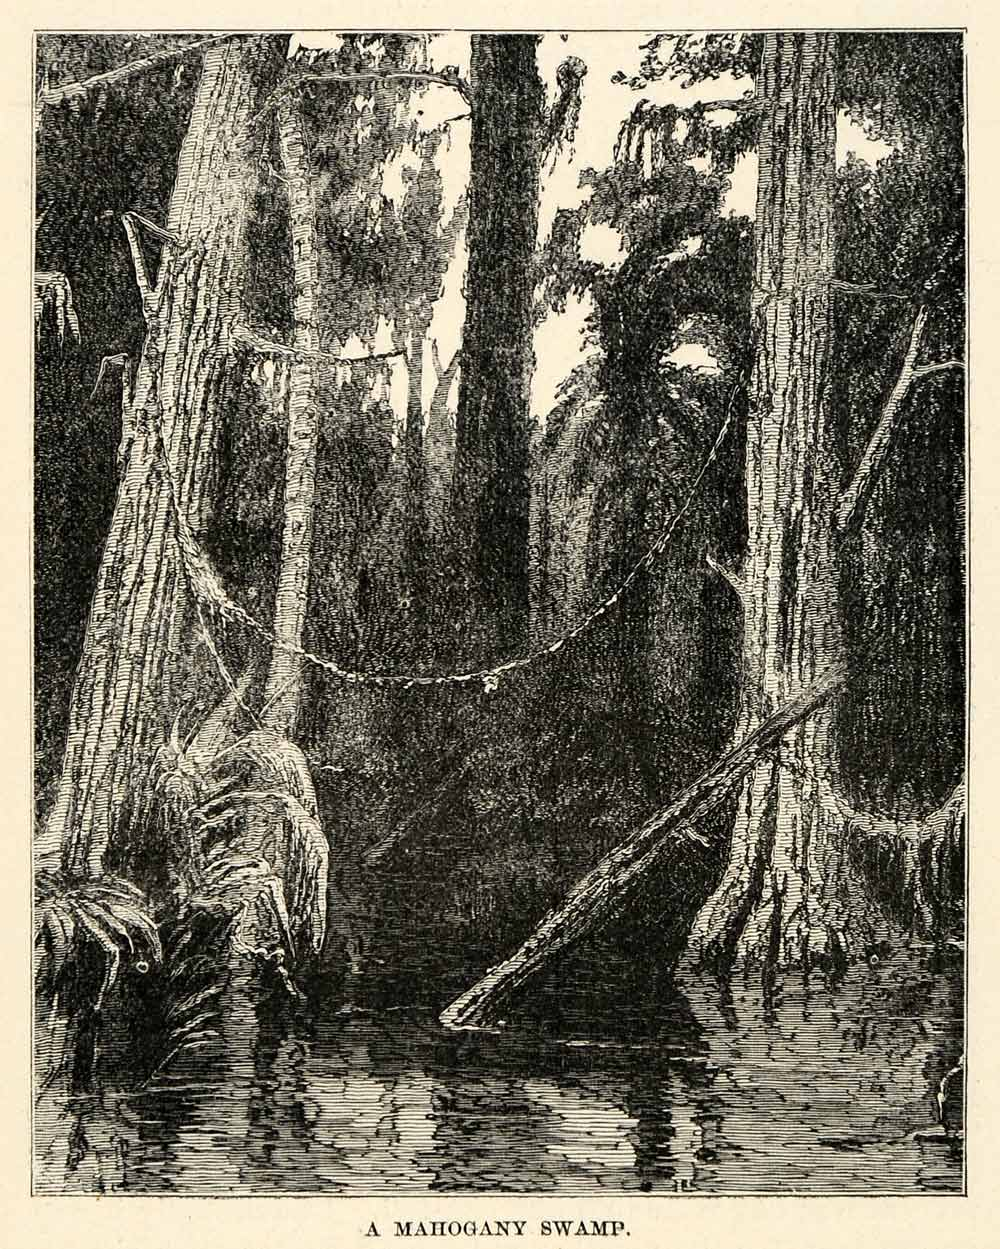 1888 Wood Engraving Mahogany Swamp Forest Nicaragua Central America River XGU6